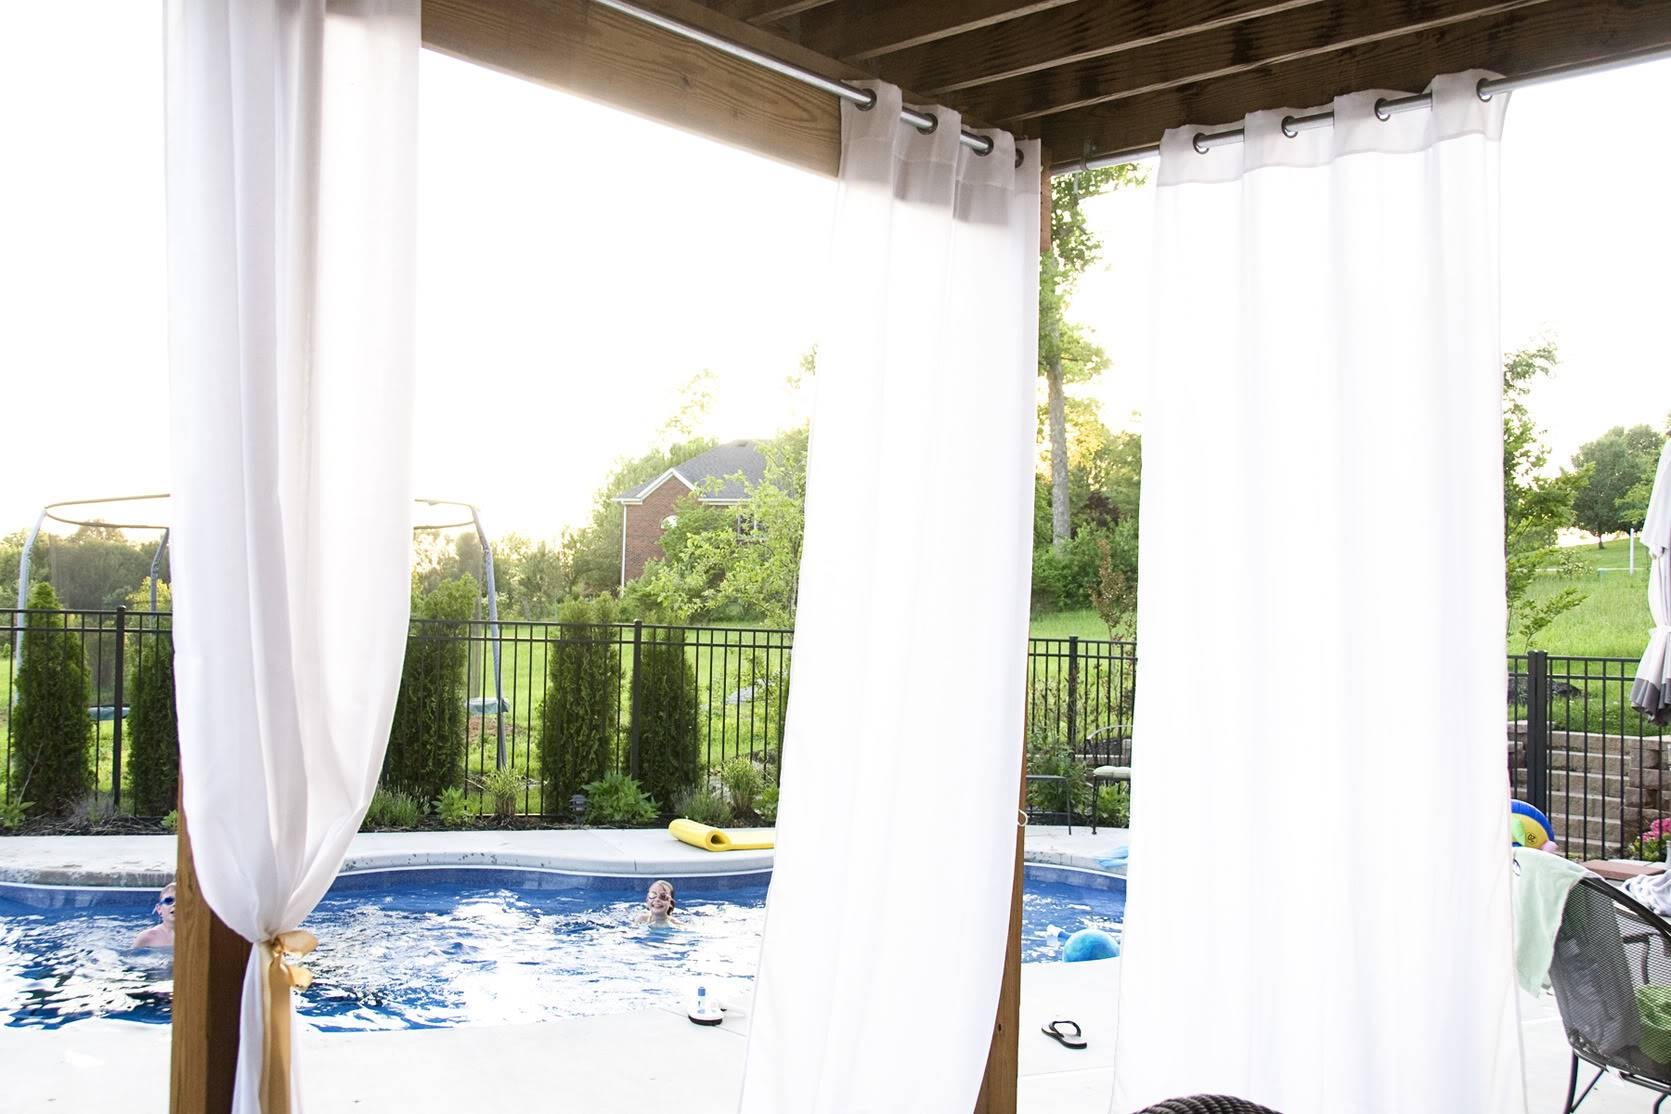 White drapes hanging from wood deck with pool in background